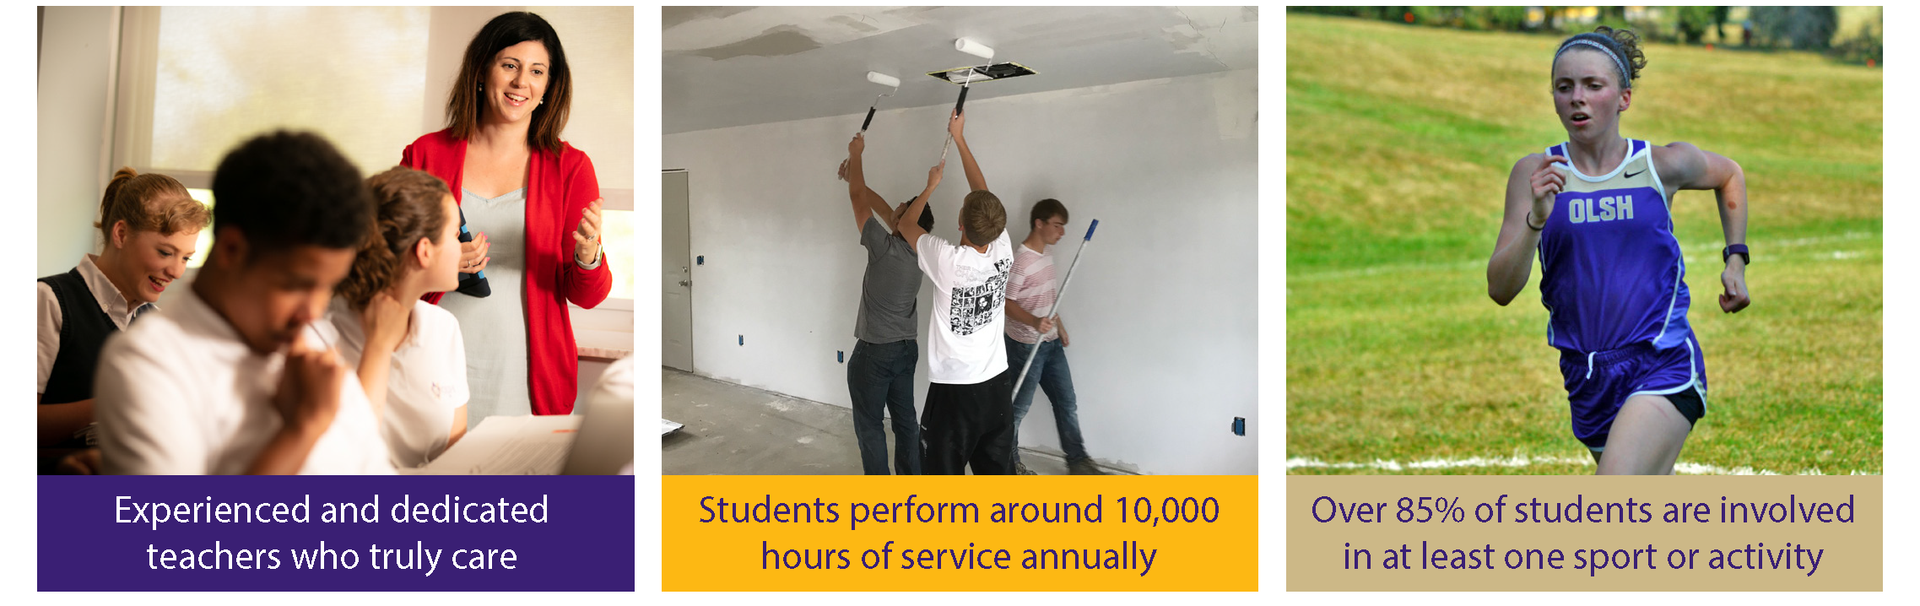 Did you know? OLSH students regularly complete nearly 10,000 hours of community service each year